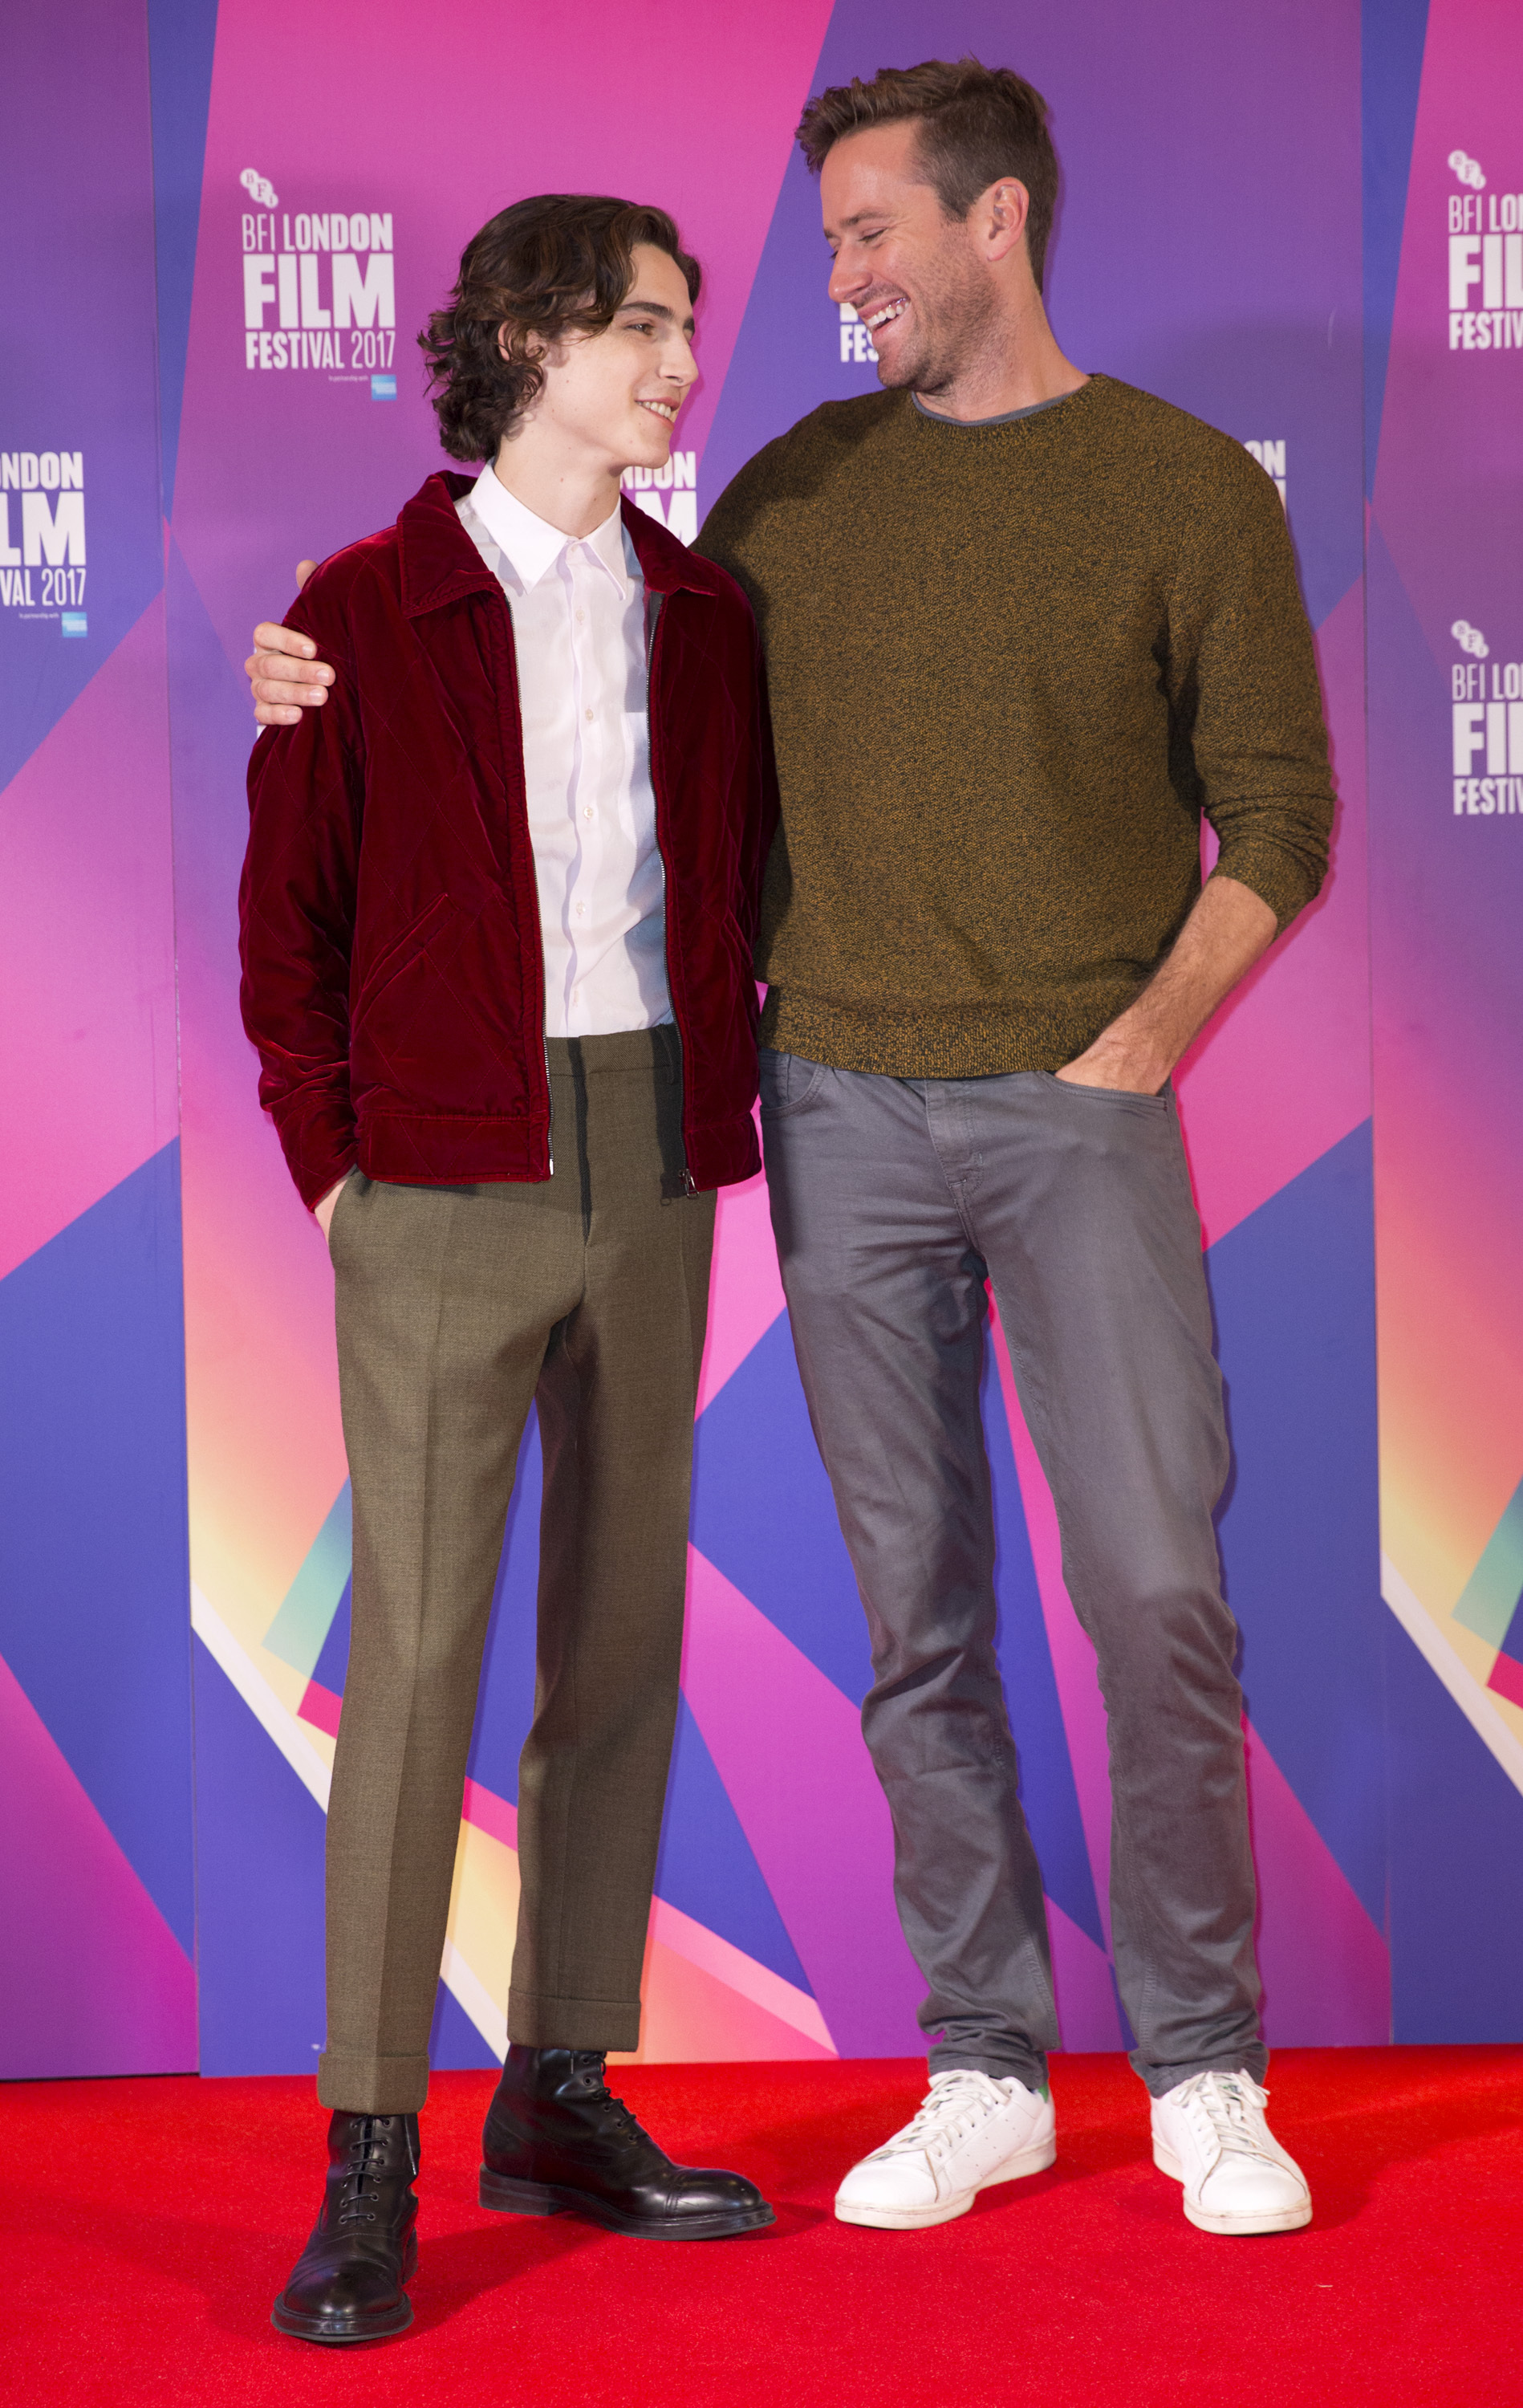 Timothee Chalamet (left) and Armie Hammer